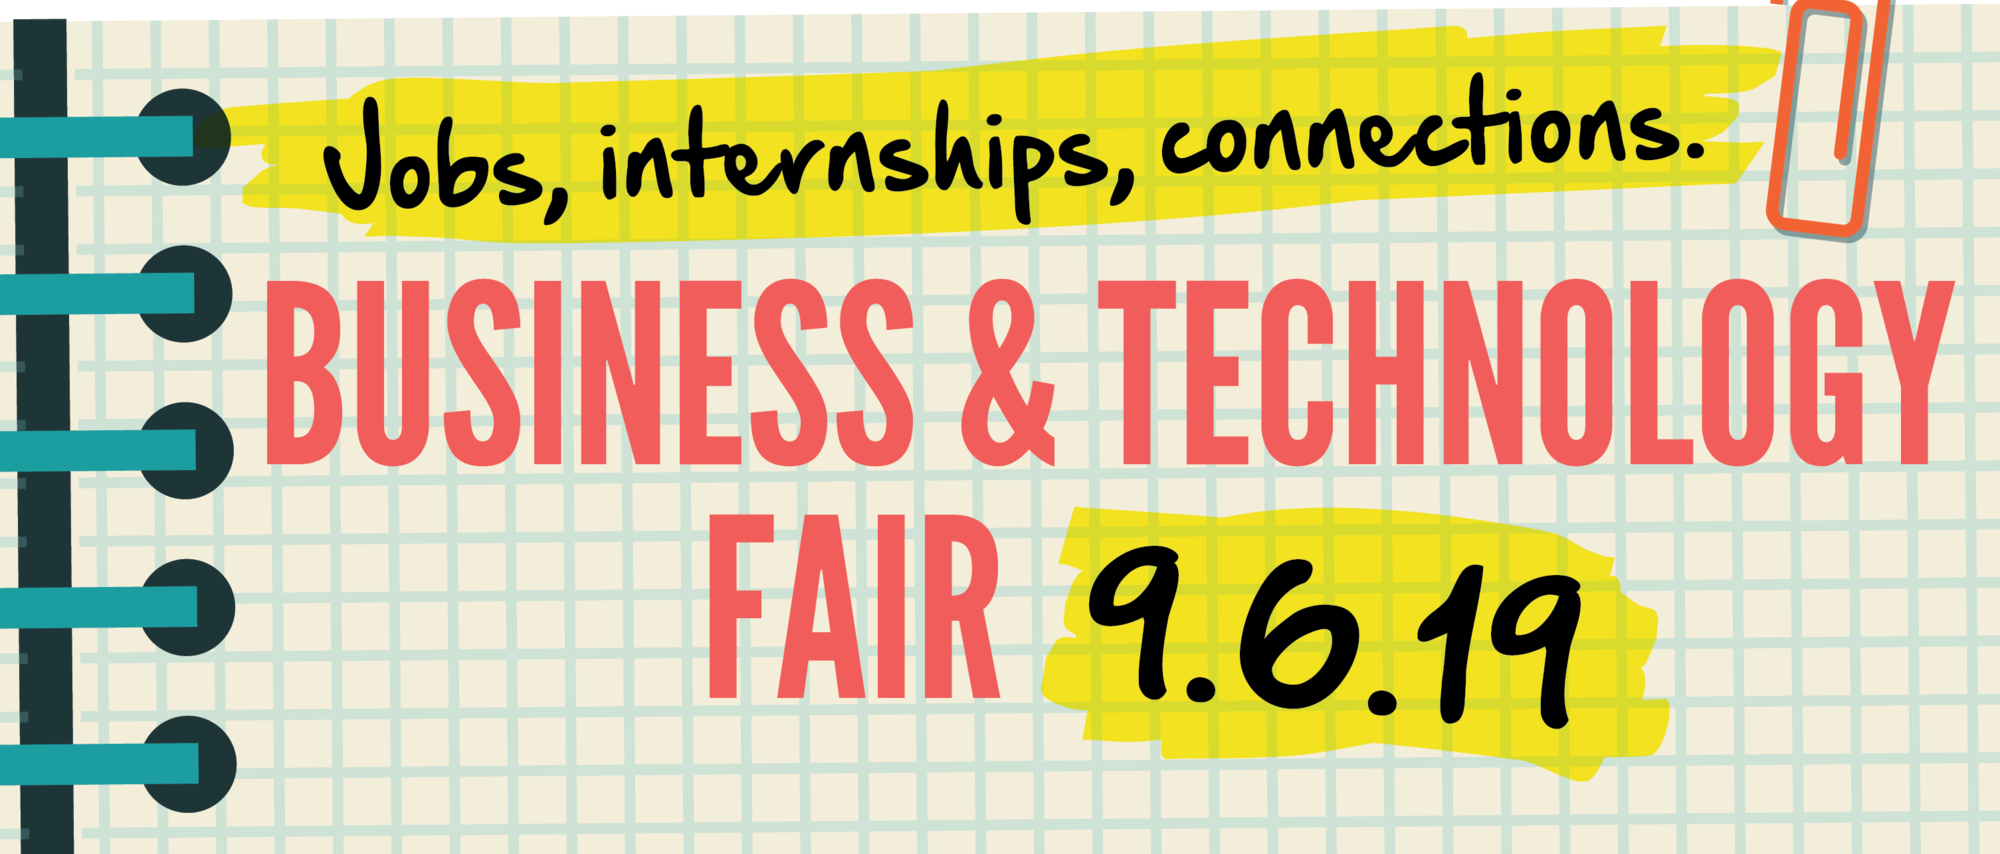 Business & Technology Fair Banner